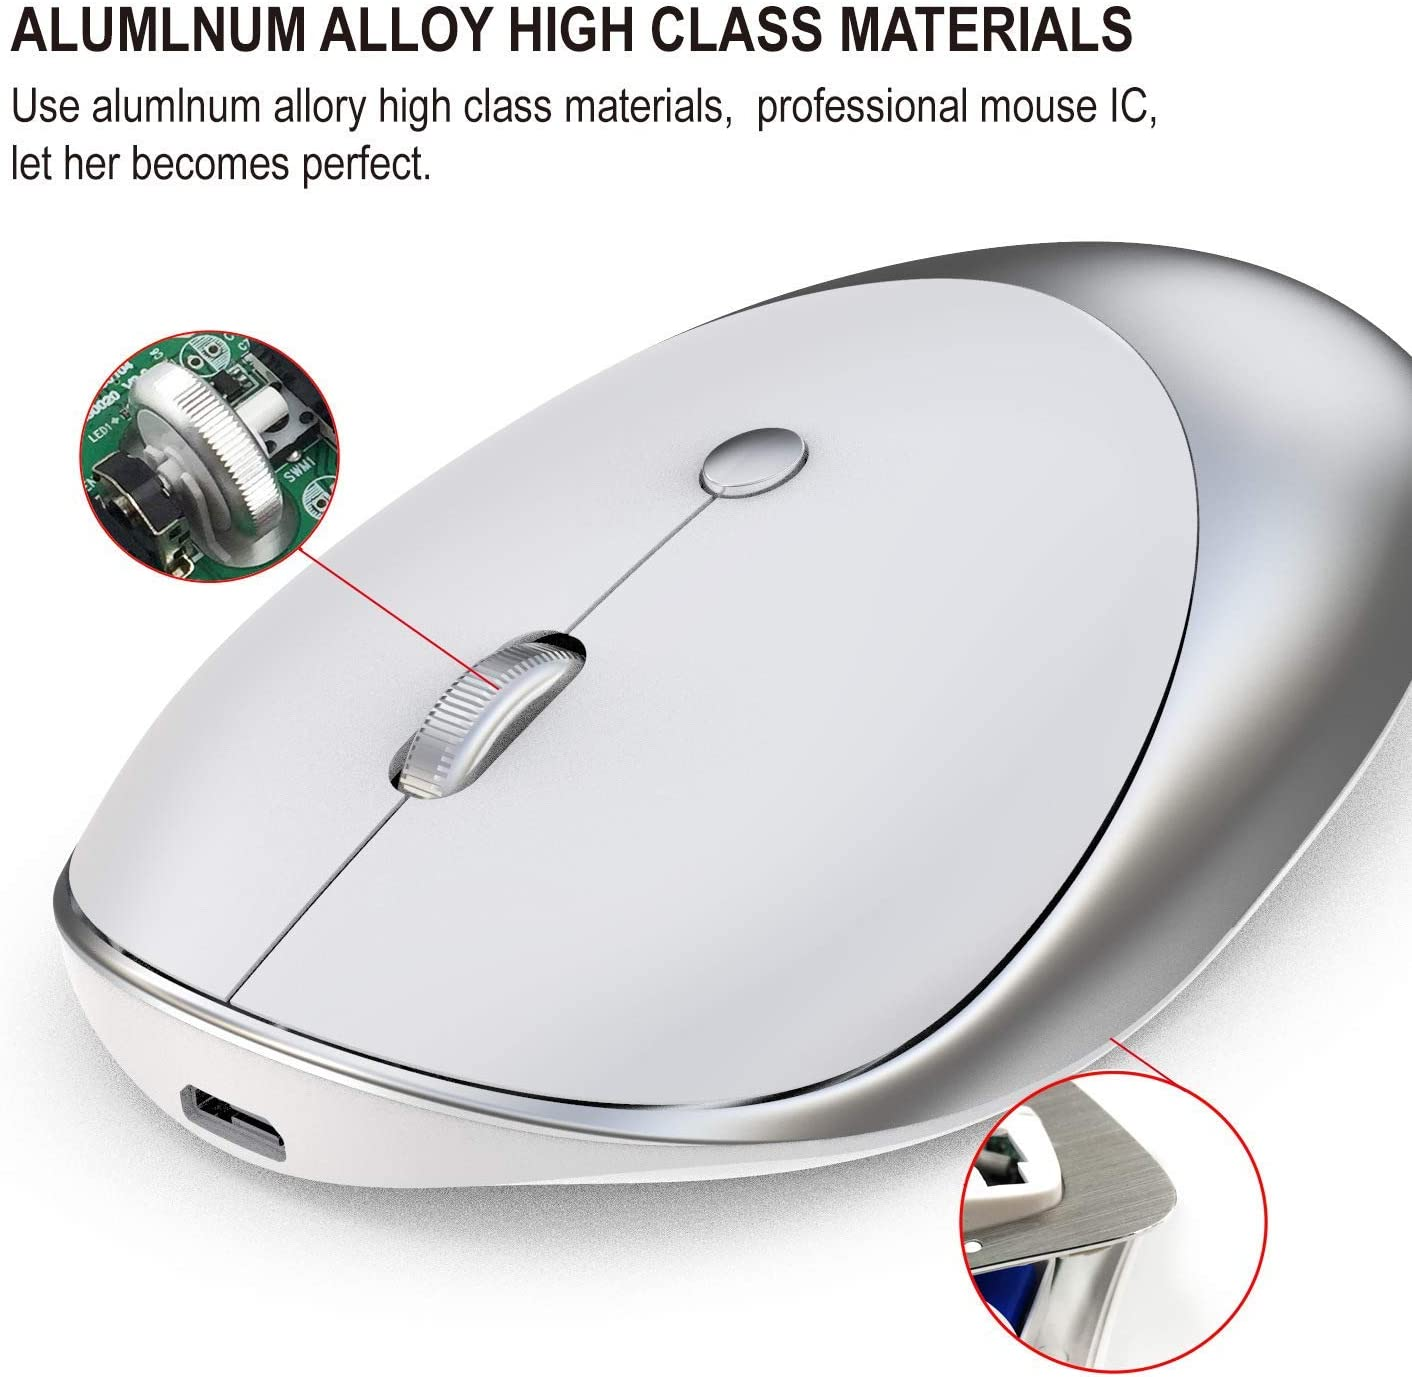 2.4G Wireless Tri-Mode Technology Silent Design for Notebook Computers YUEBAOBEI Wireless Mouse Ergonomic Design Lightweight and Ultra-Thin Wireless Mouse